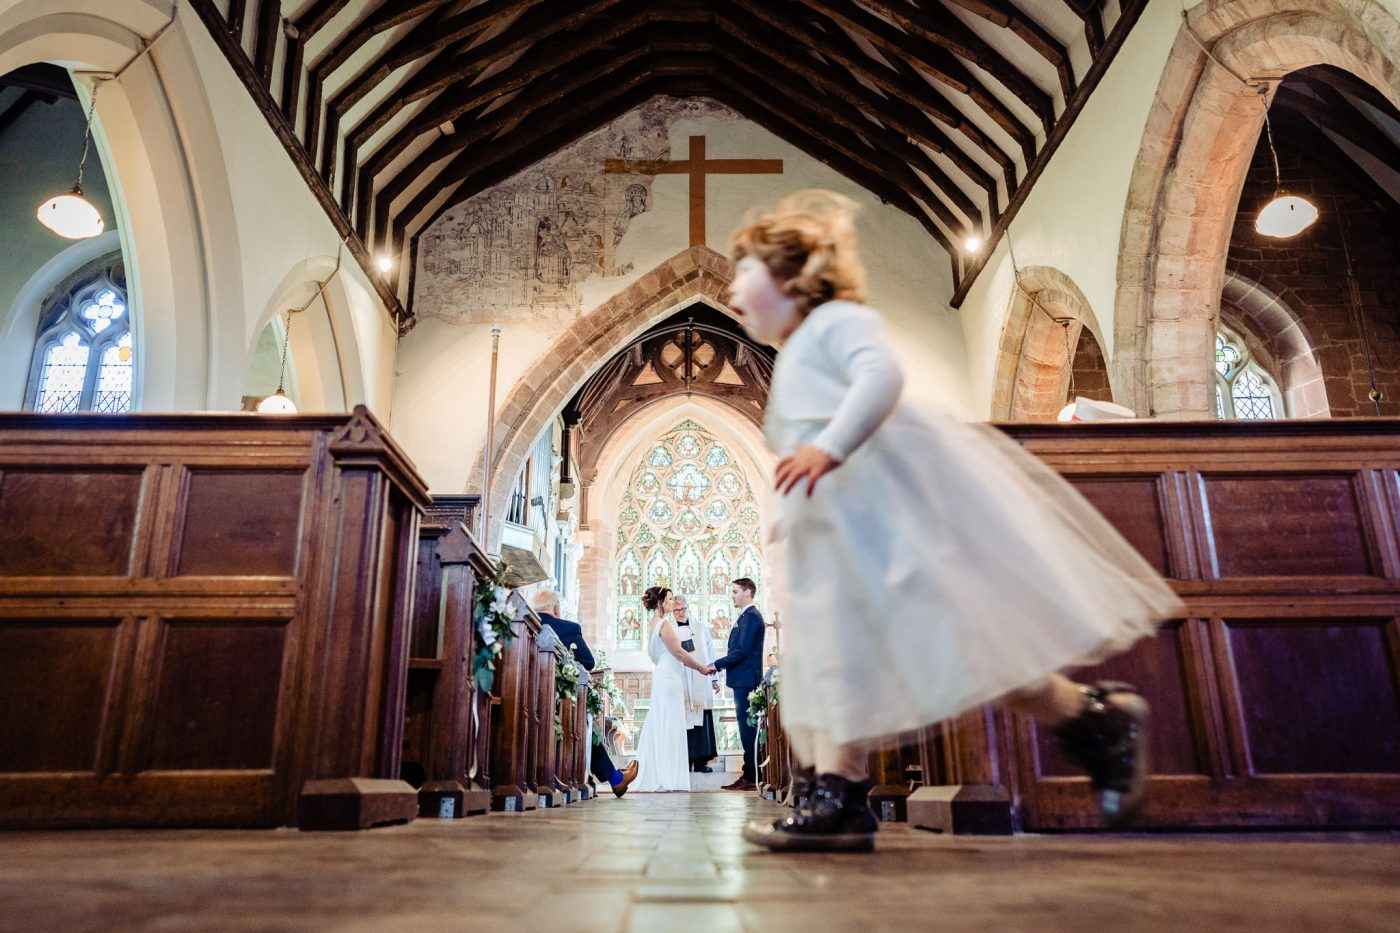 Wedding Photography by Andy Li Photography